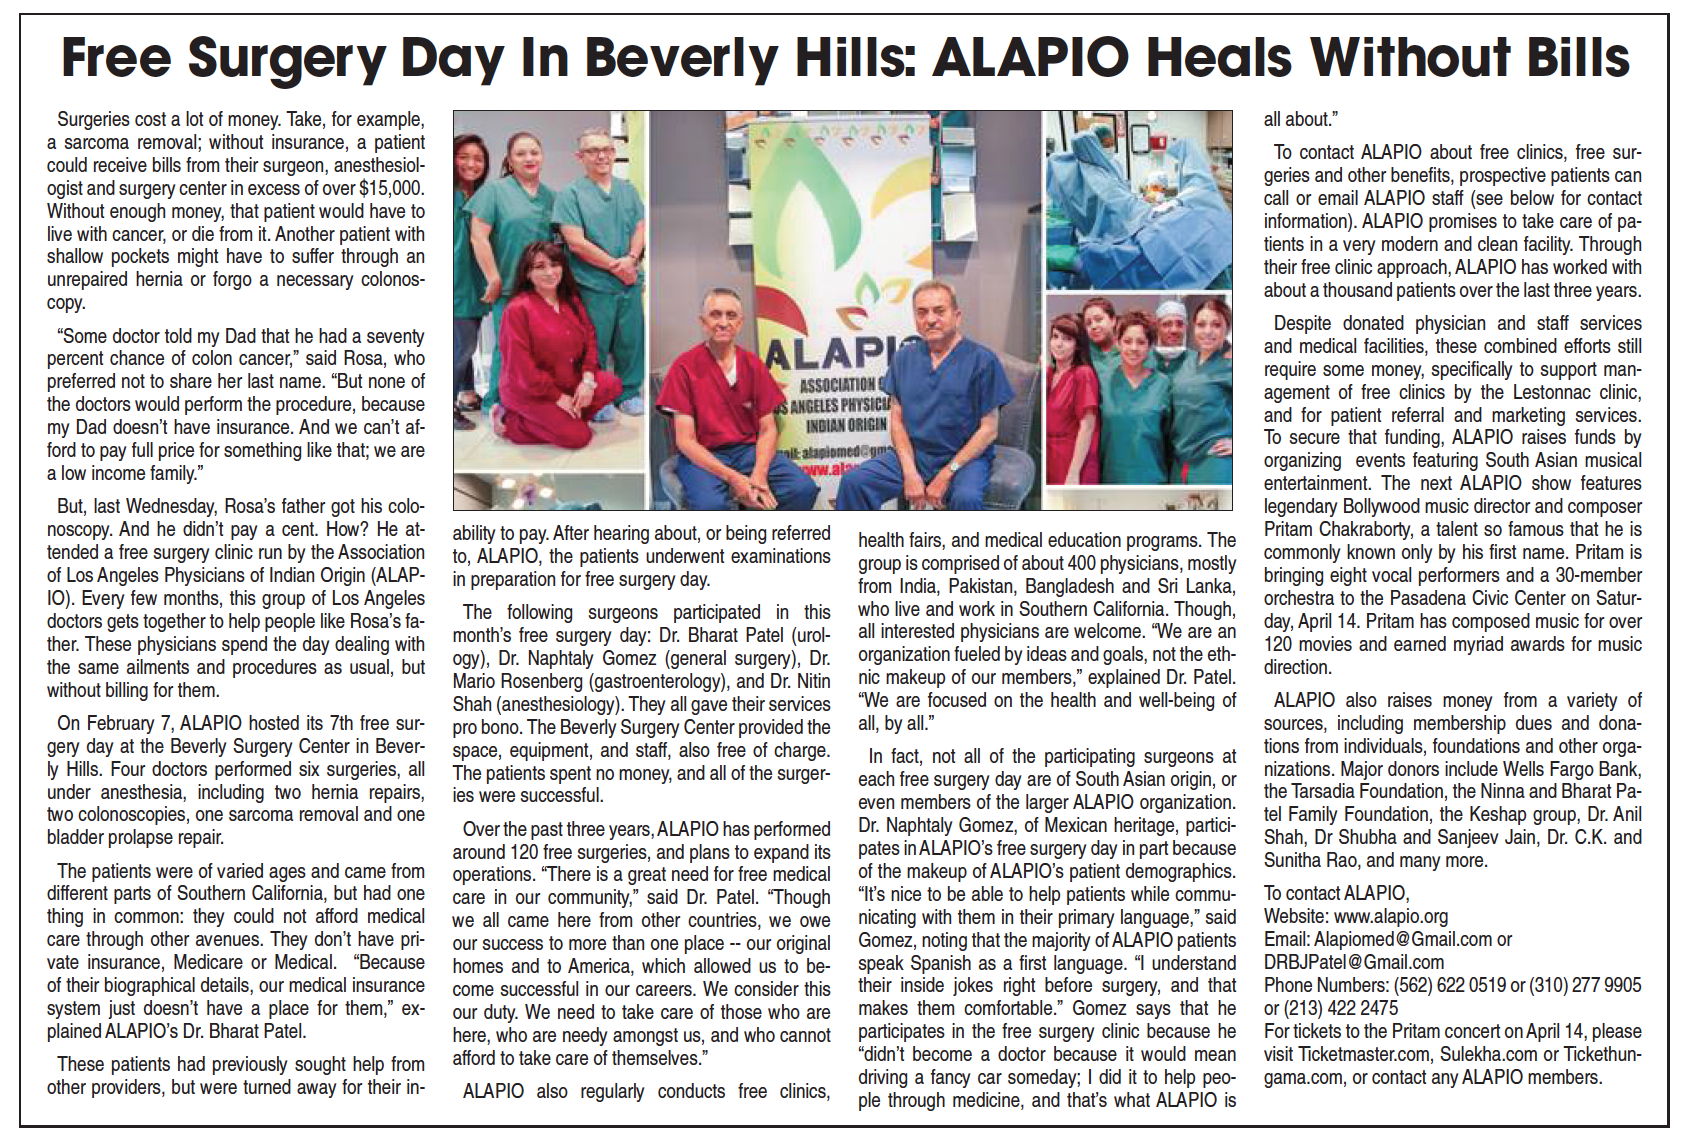 India West and Khazana, April 14th, 2017 Free Surgery Day in Beverly Hills: ALAPIO Heals without bills